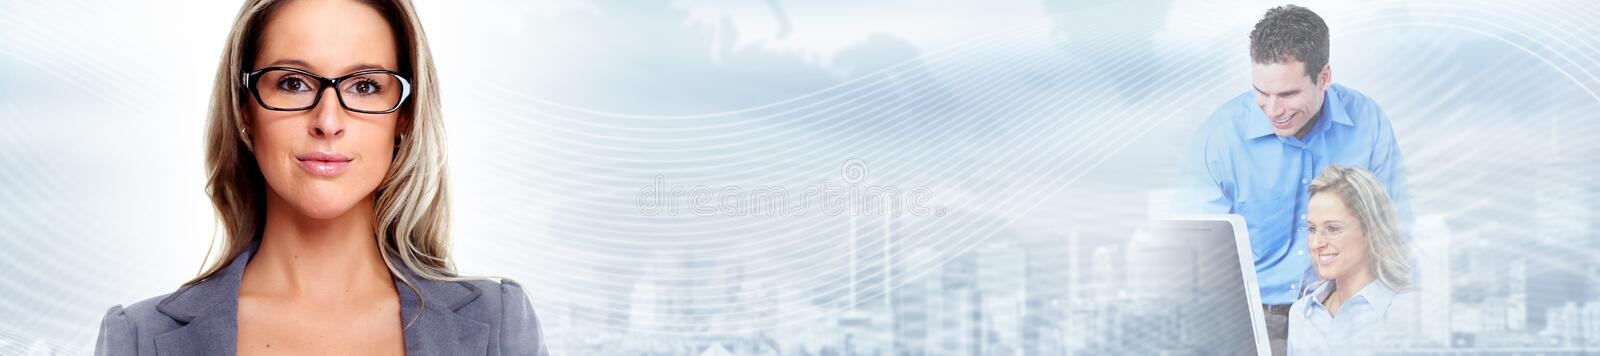 Business background. royalty free stock image